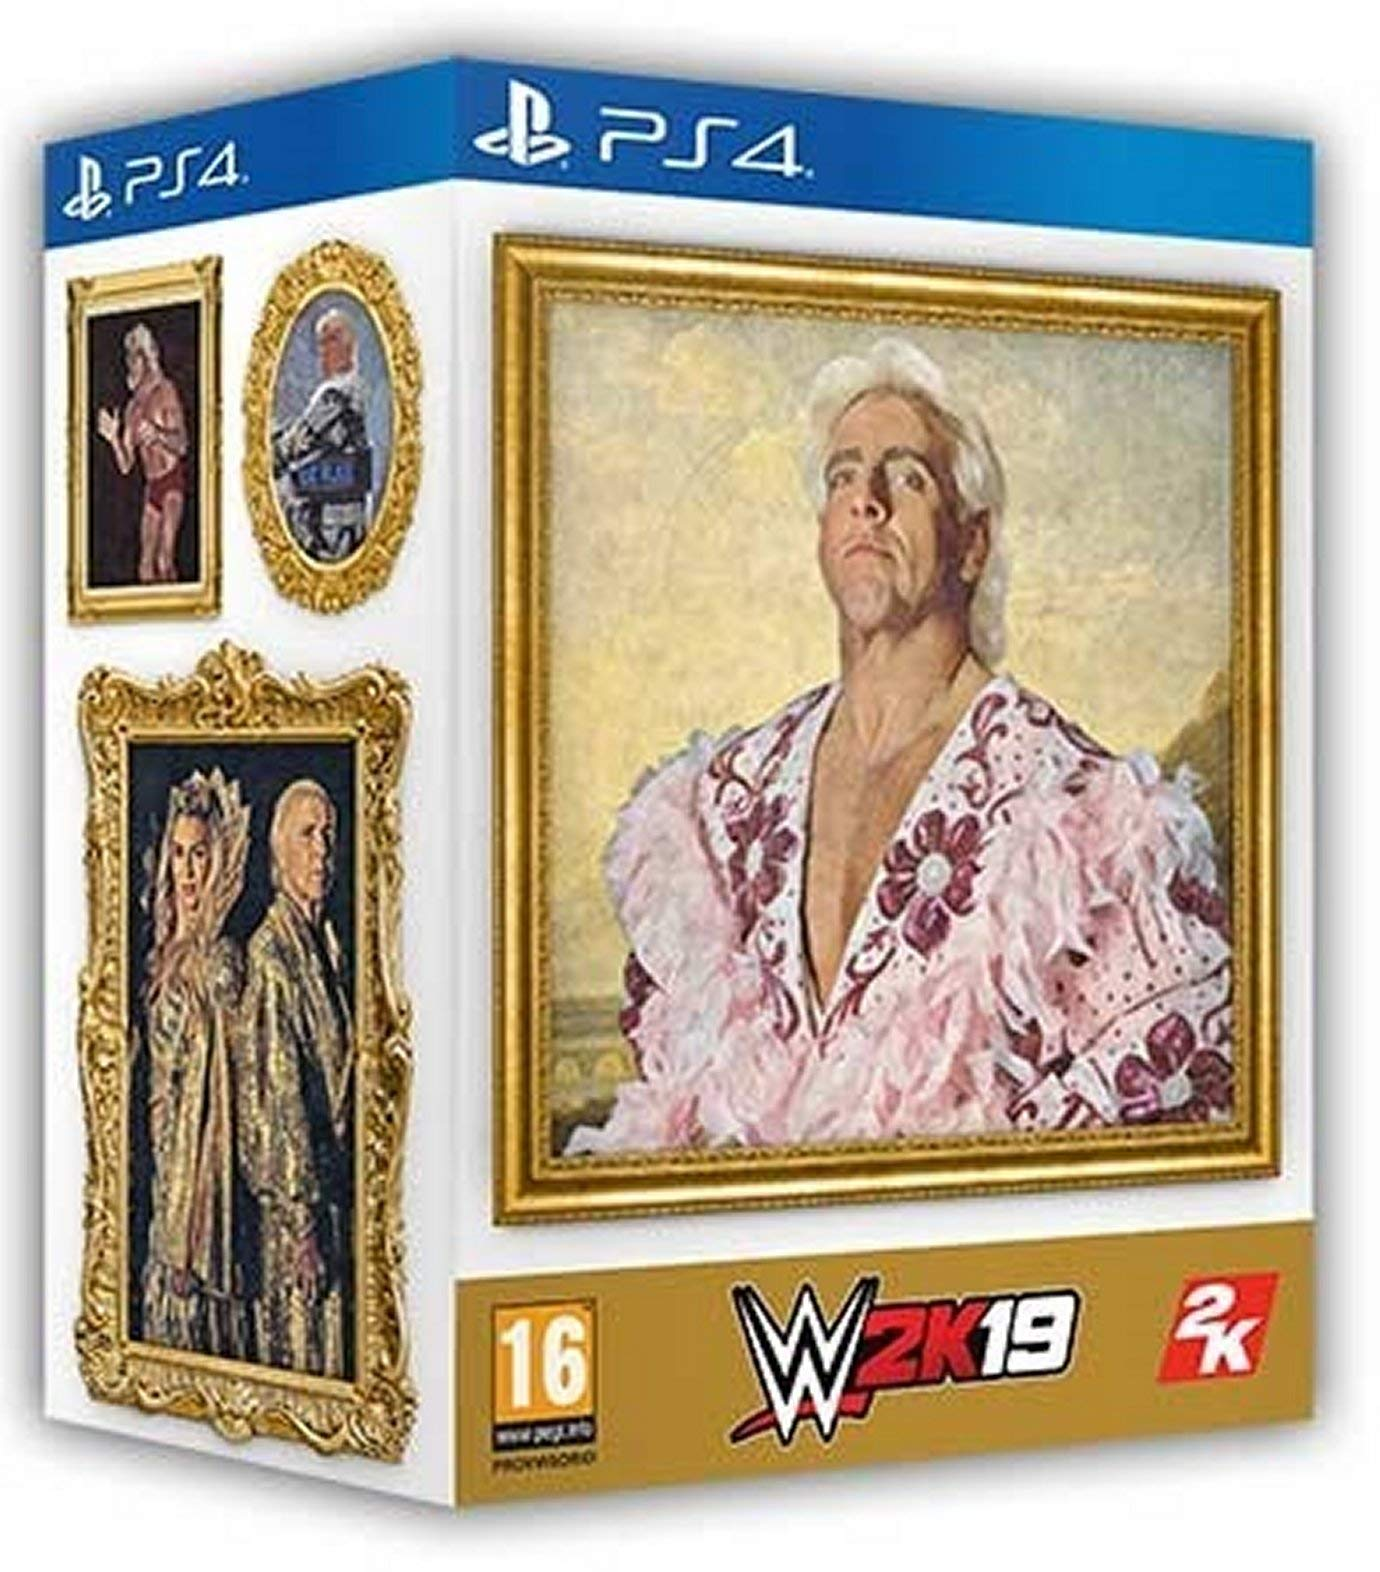 WWE 2K19 PS4 Collector's Edition